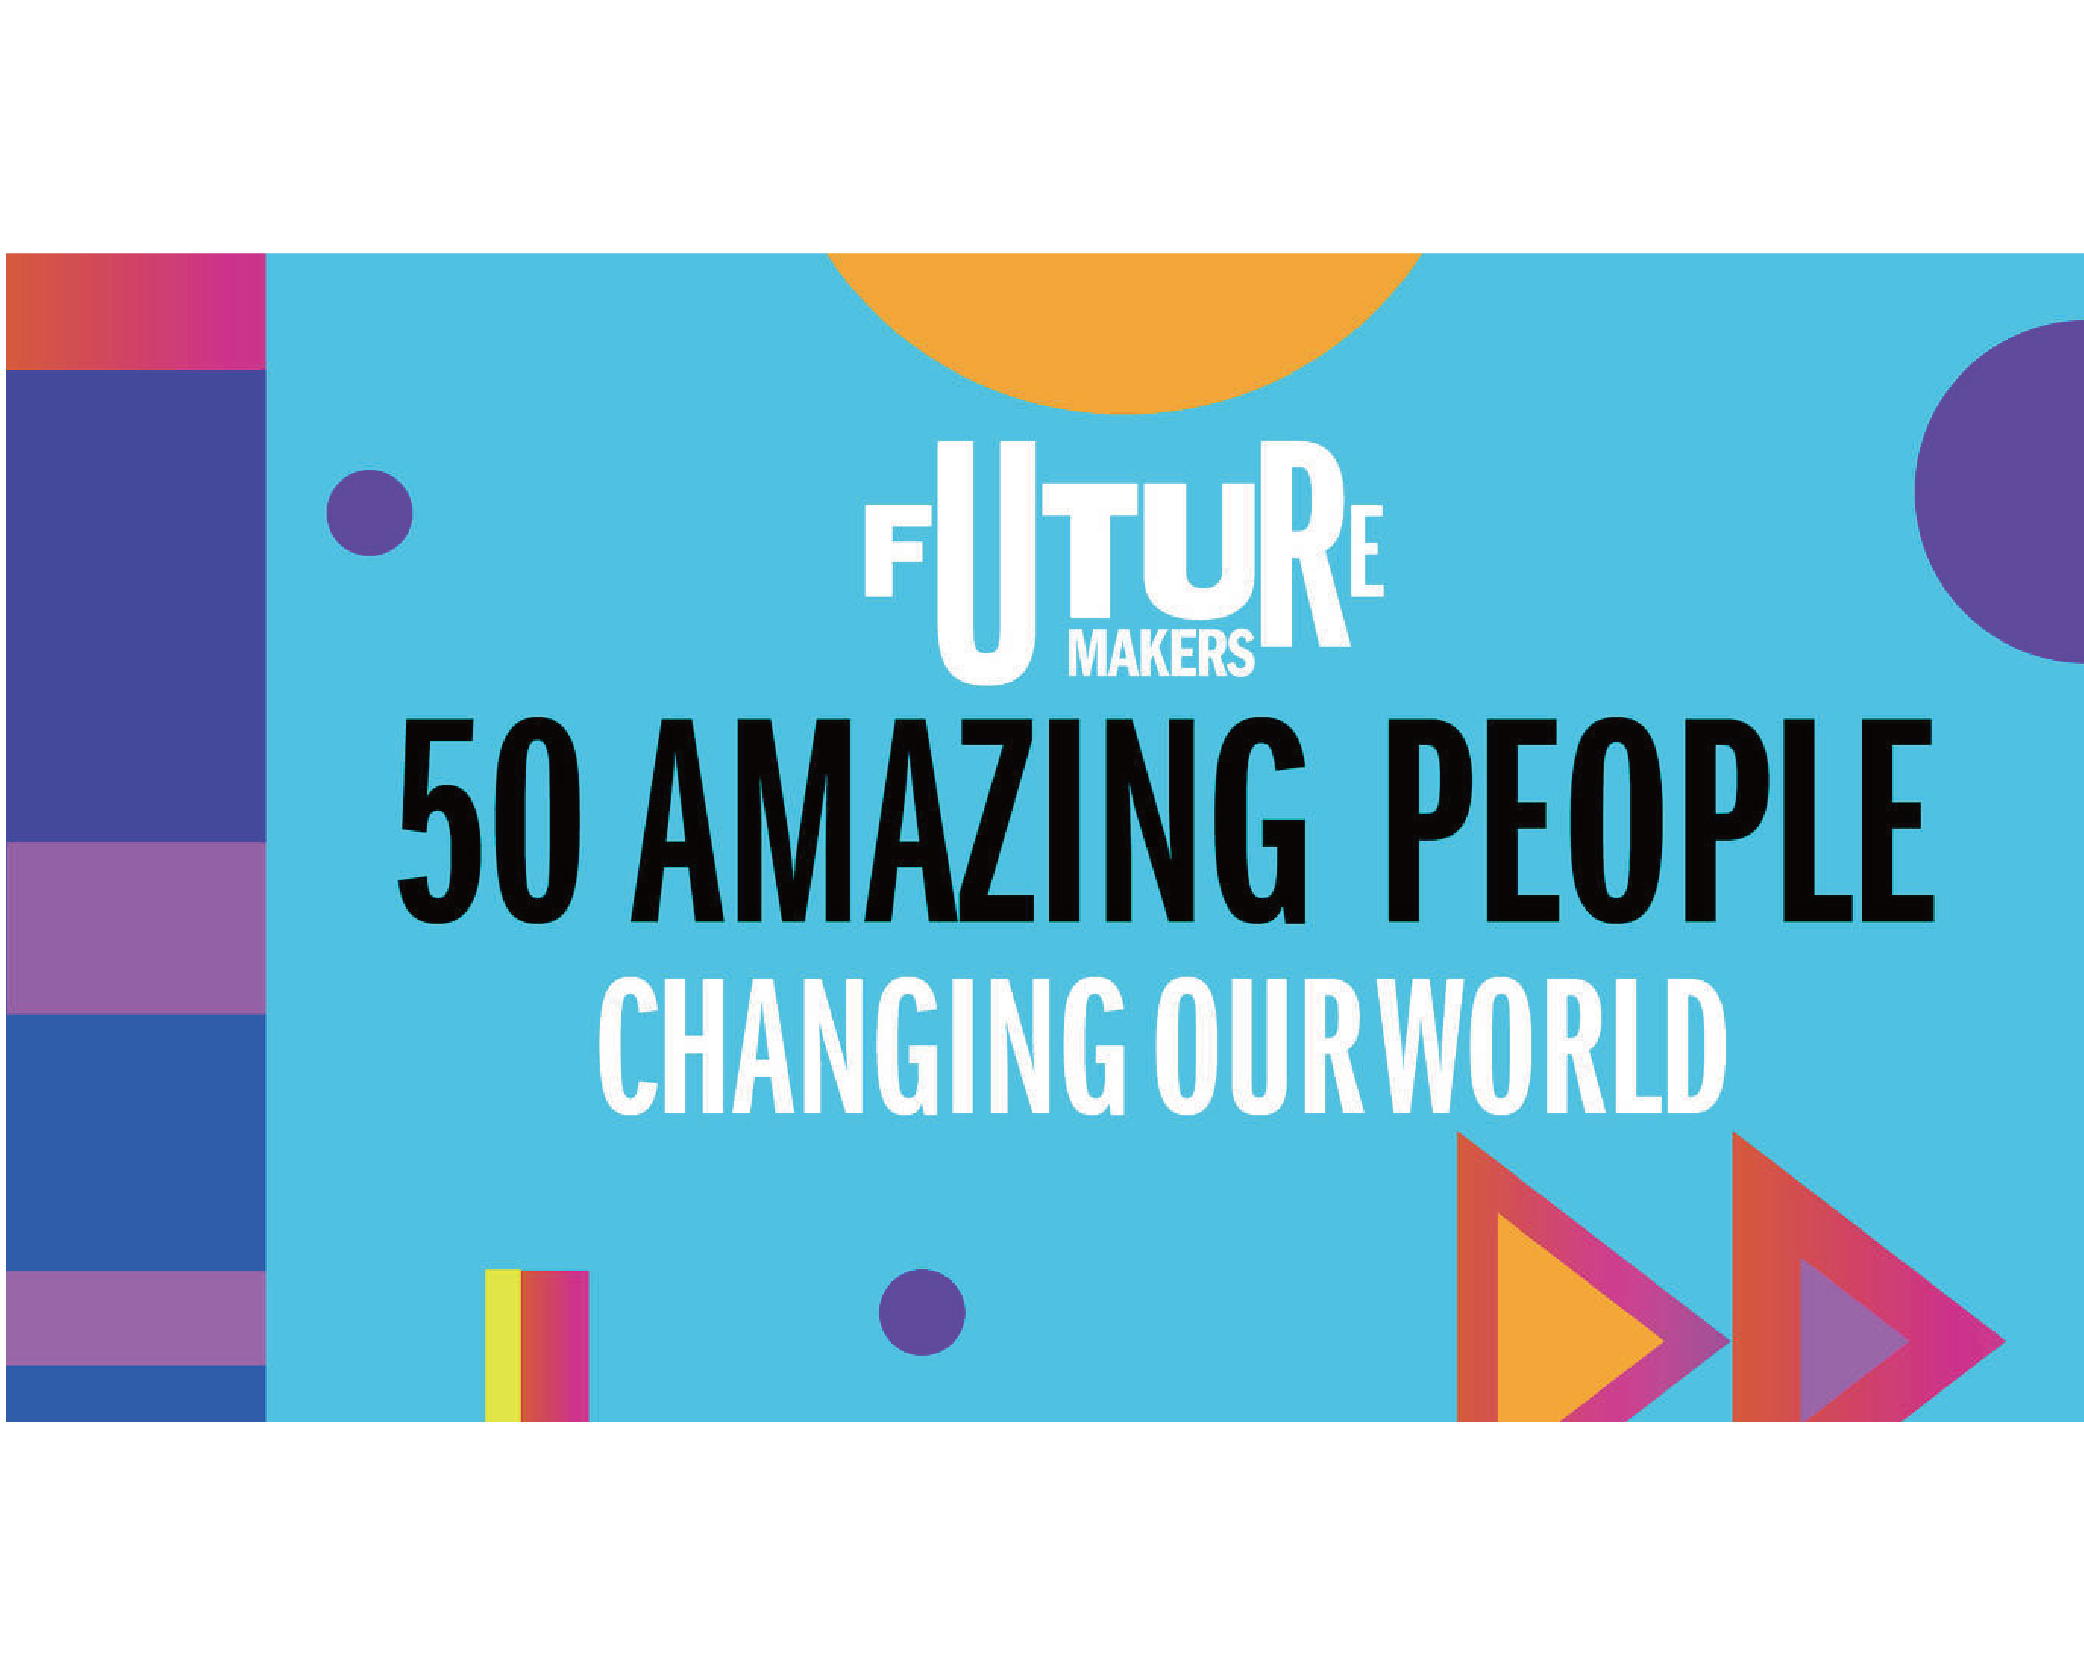 Time Out reveals the list of 50 amazing people changing our world